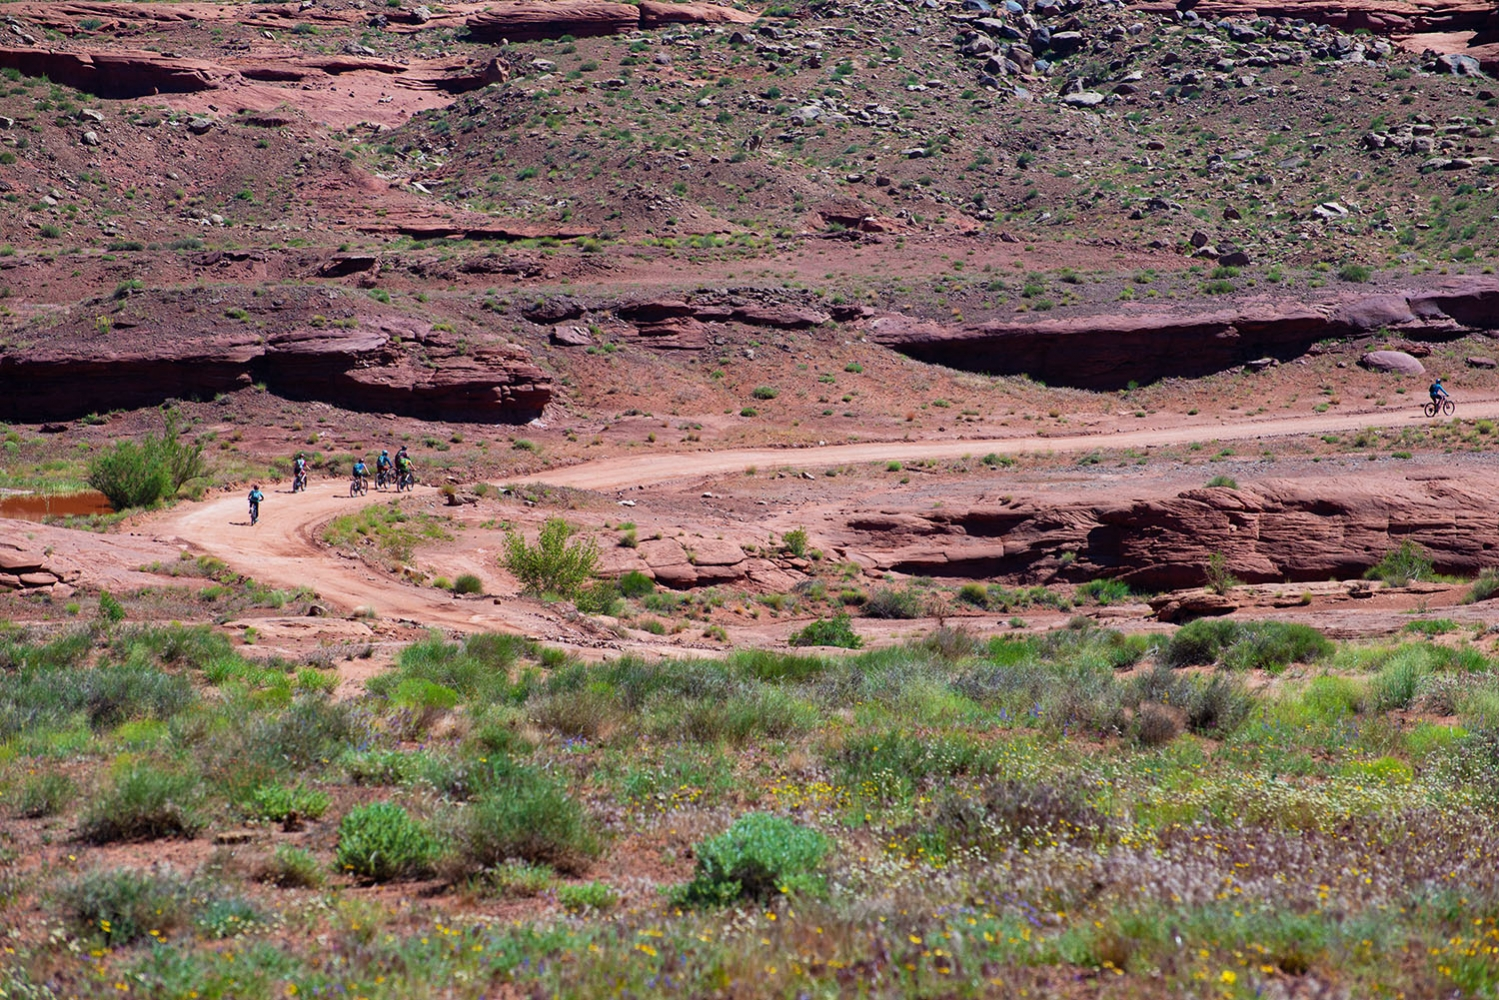 Canyonlands-National-Park-Full-Day-Guided-Mtb-Tour-Group-Through-Canyon